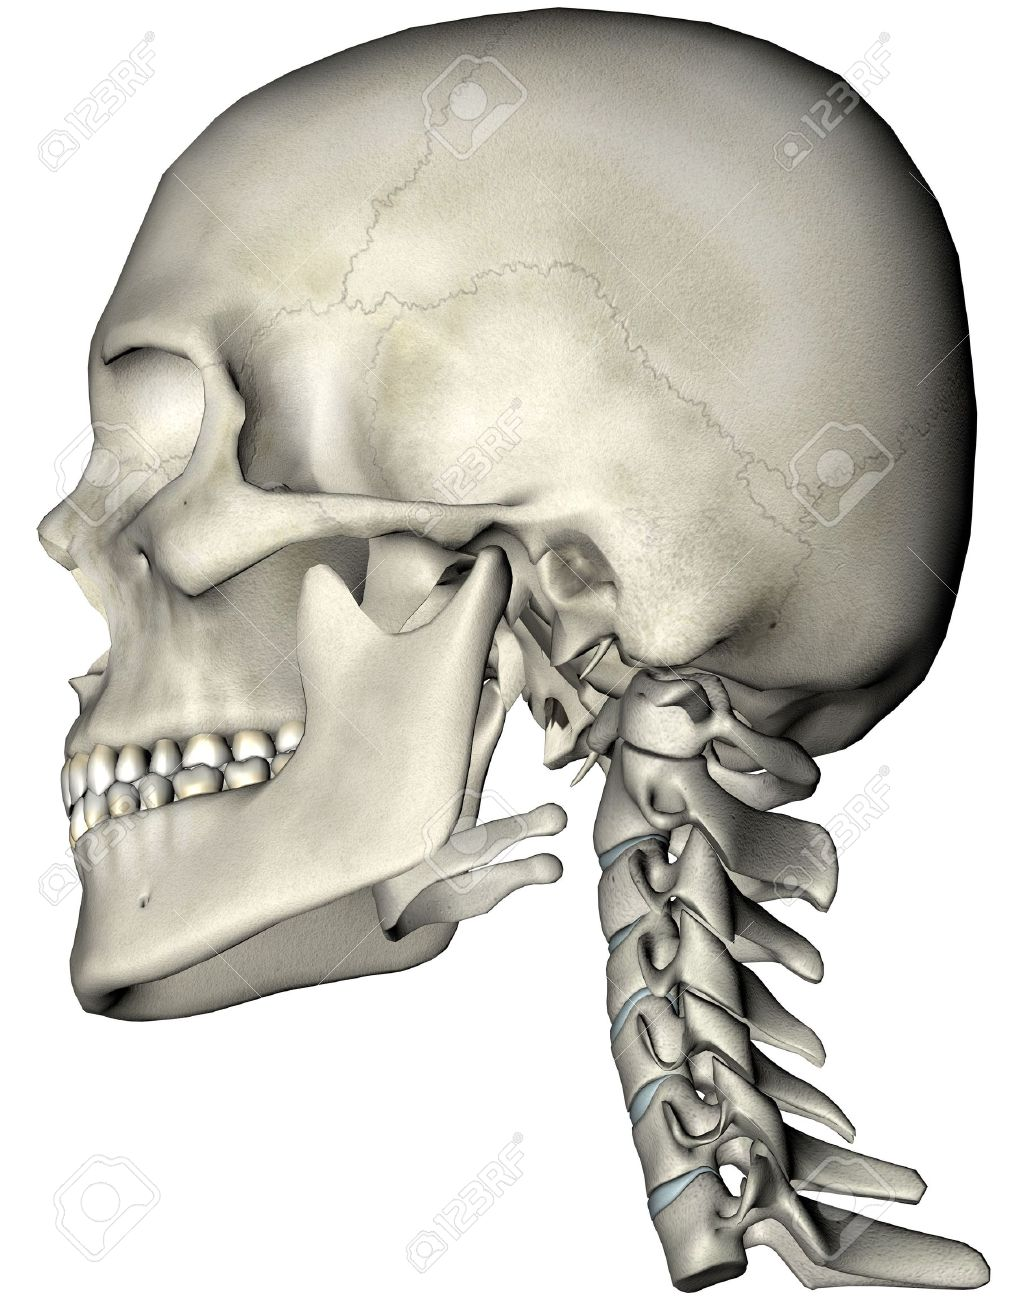 Human Skull And Cervical Spine Neck Lateral Anatomical 3d